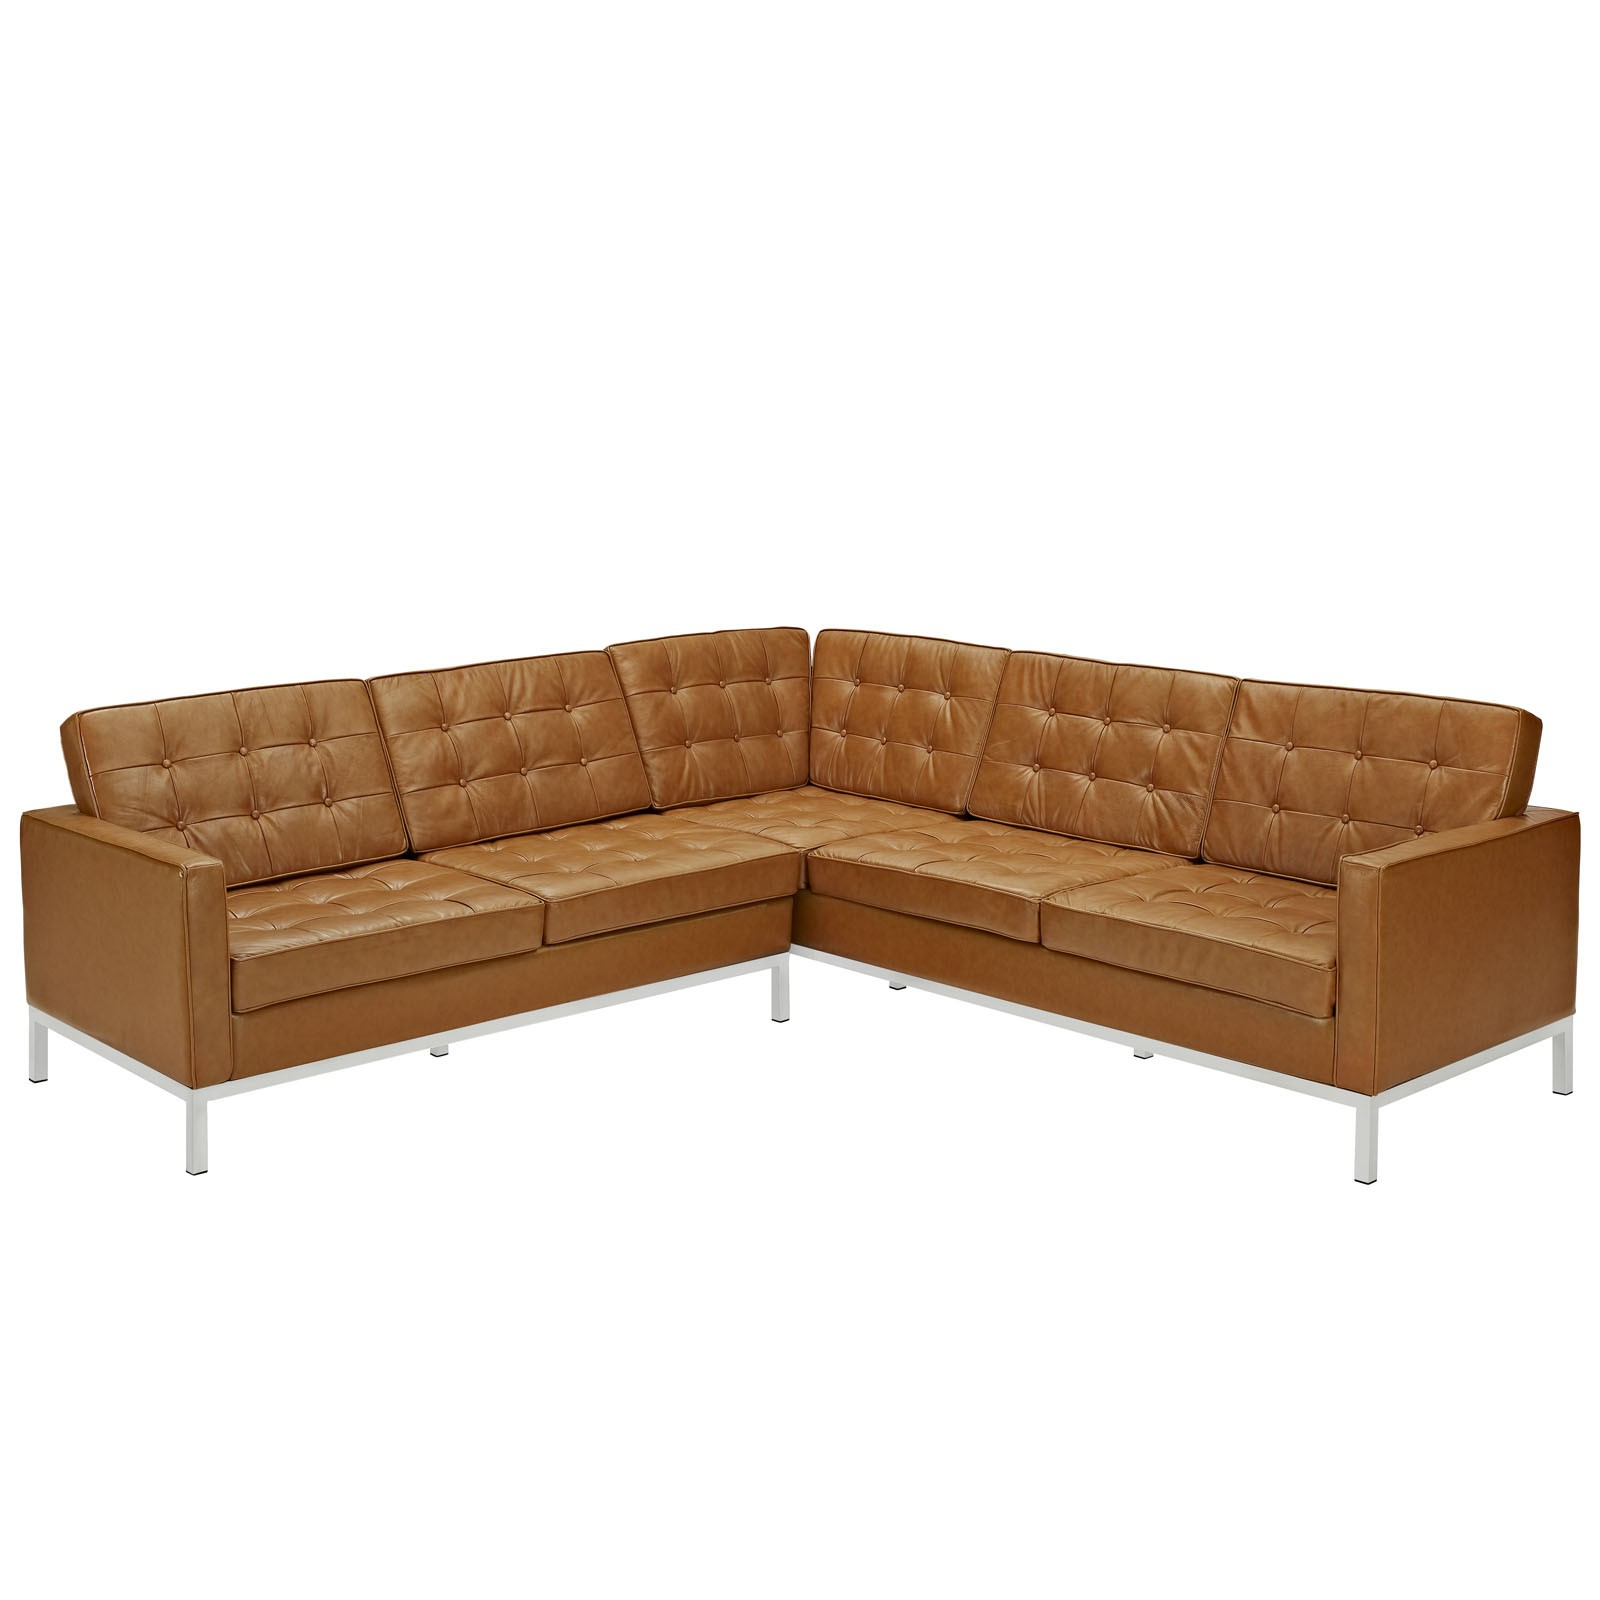 Image of: inspiration tufted leather sofa